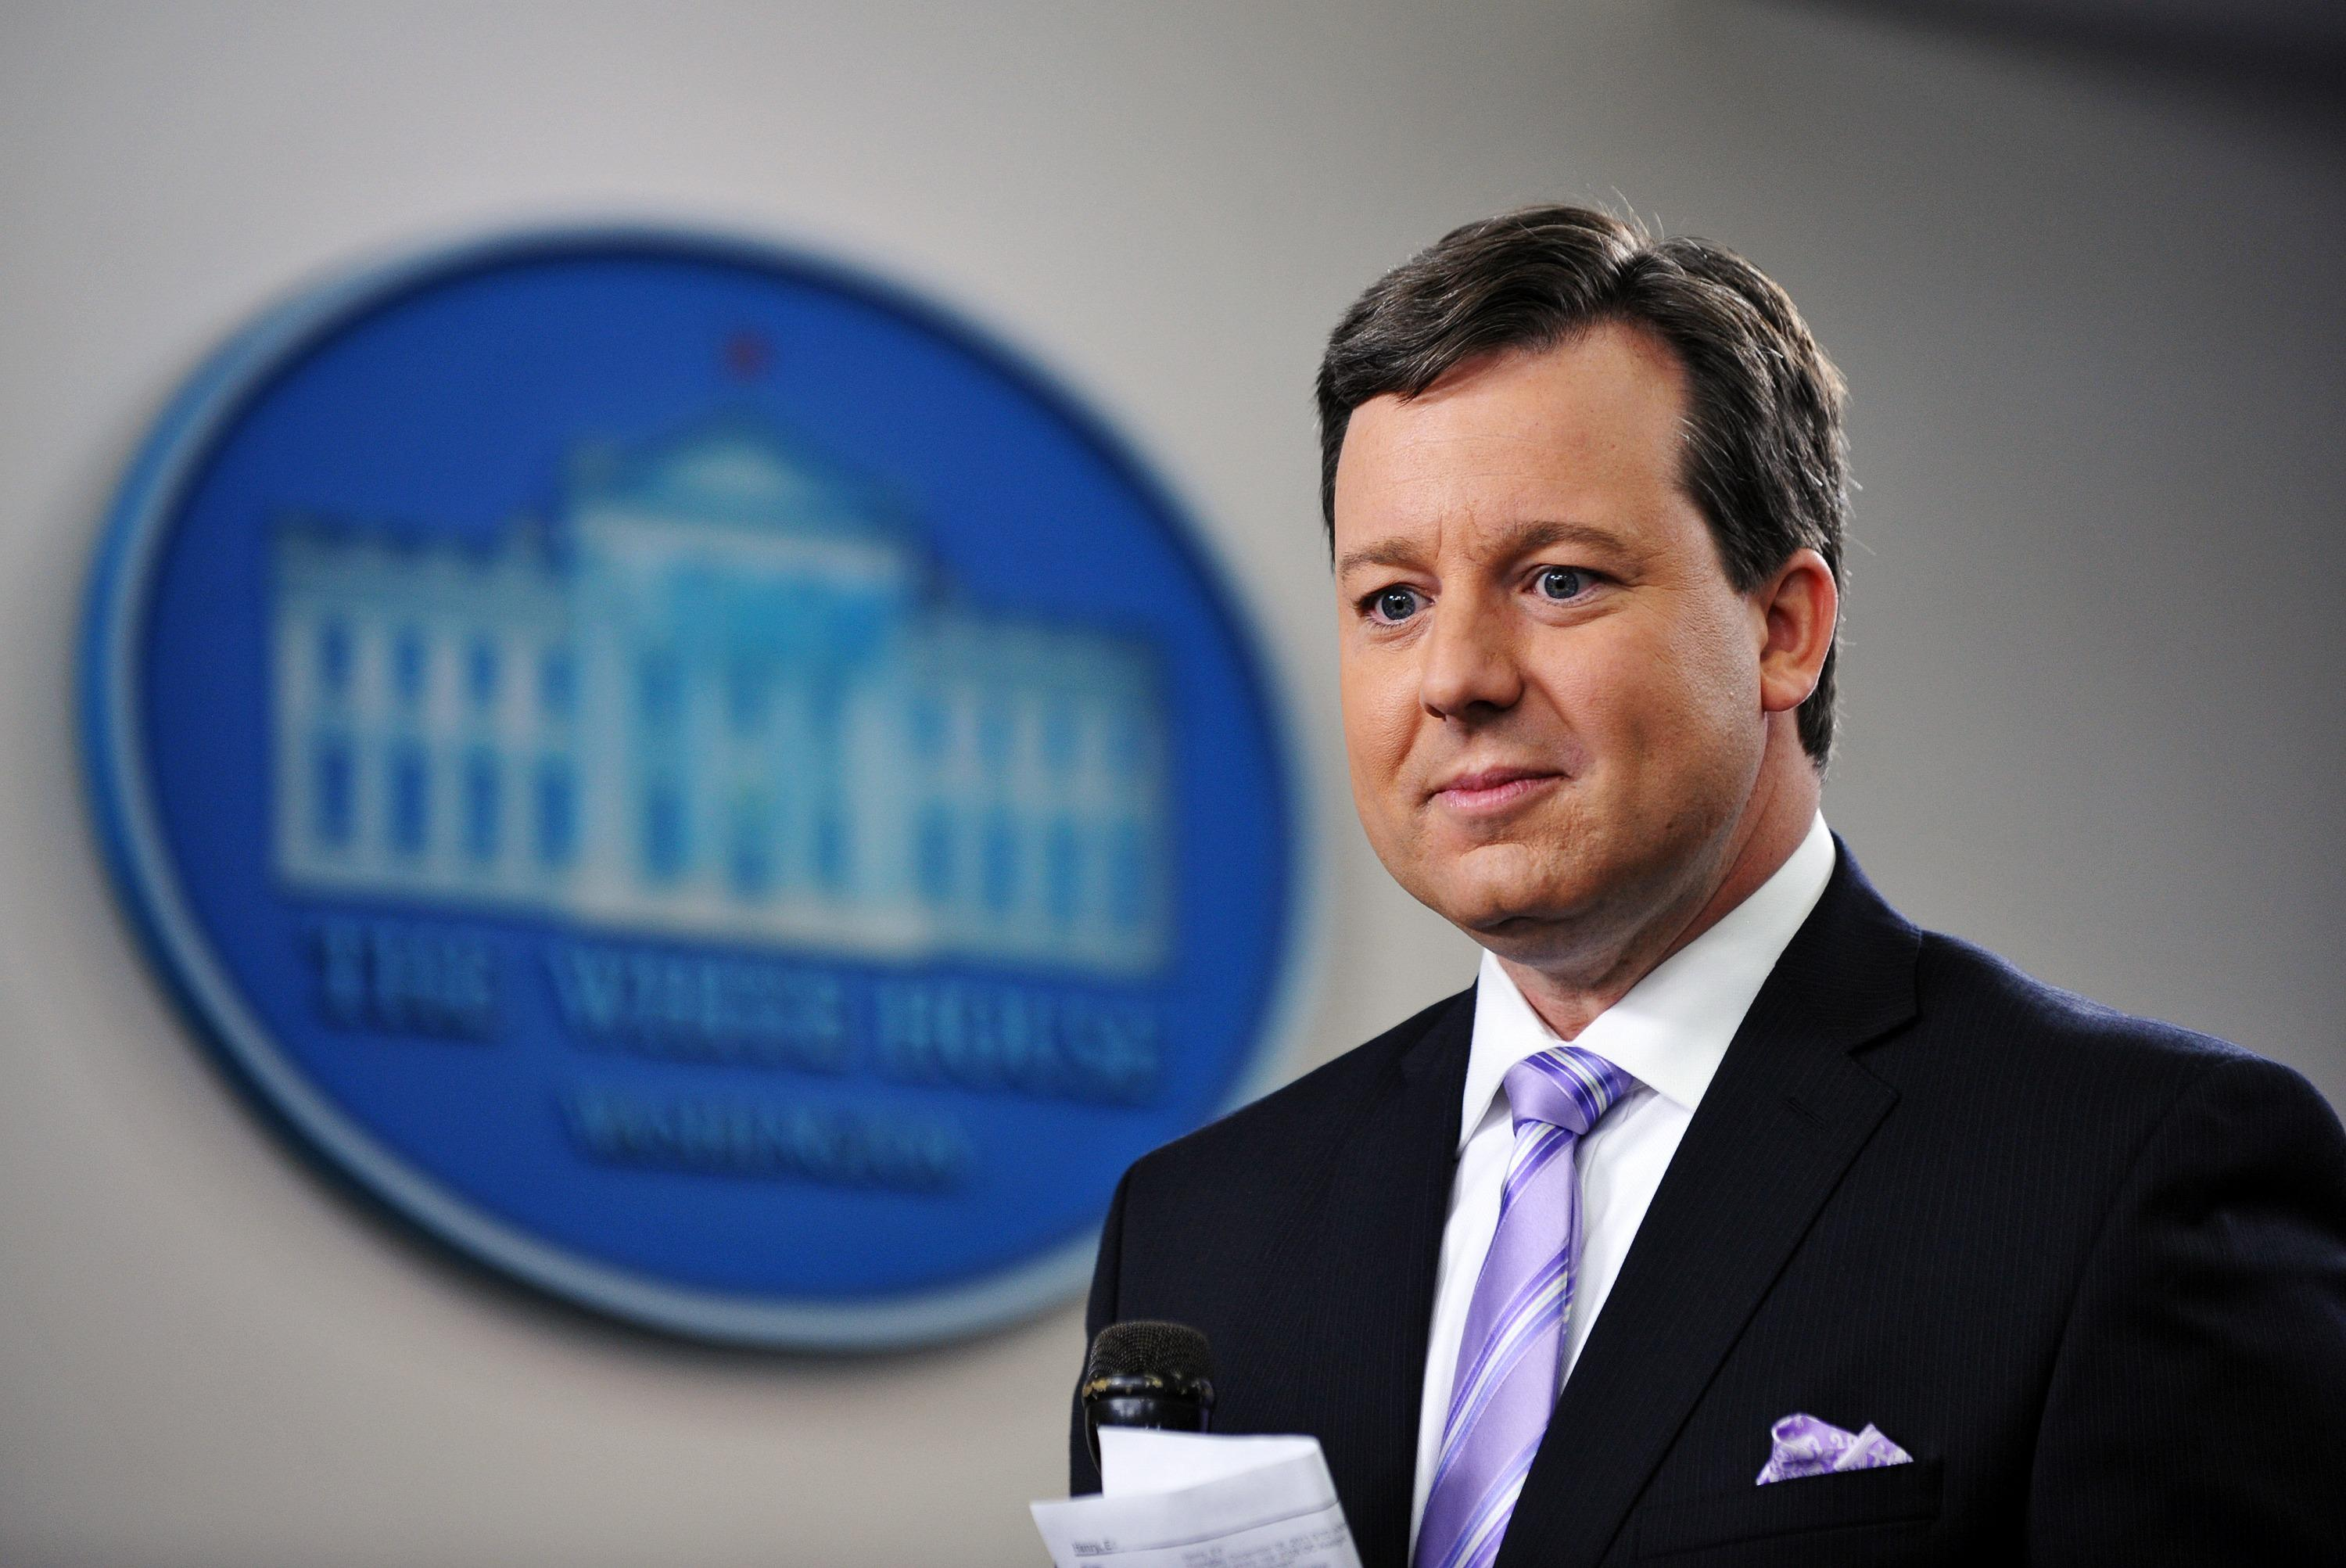 Fox News terminates Ed Henry after outside probe into sexual misconduct claim